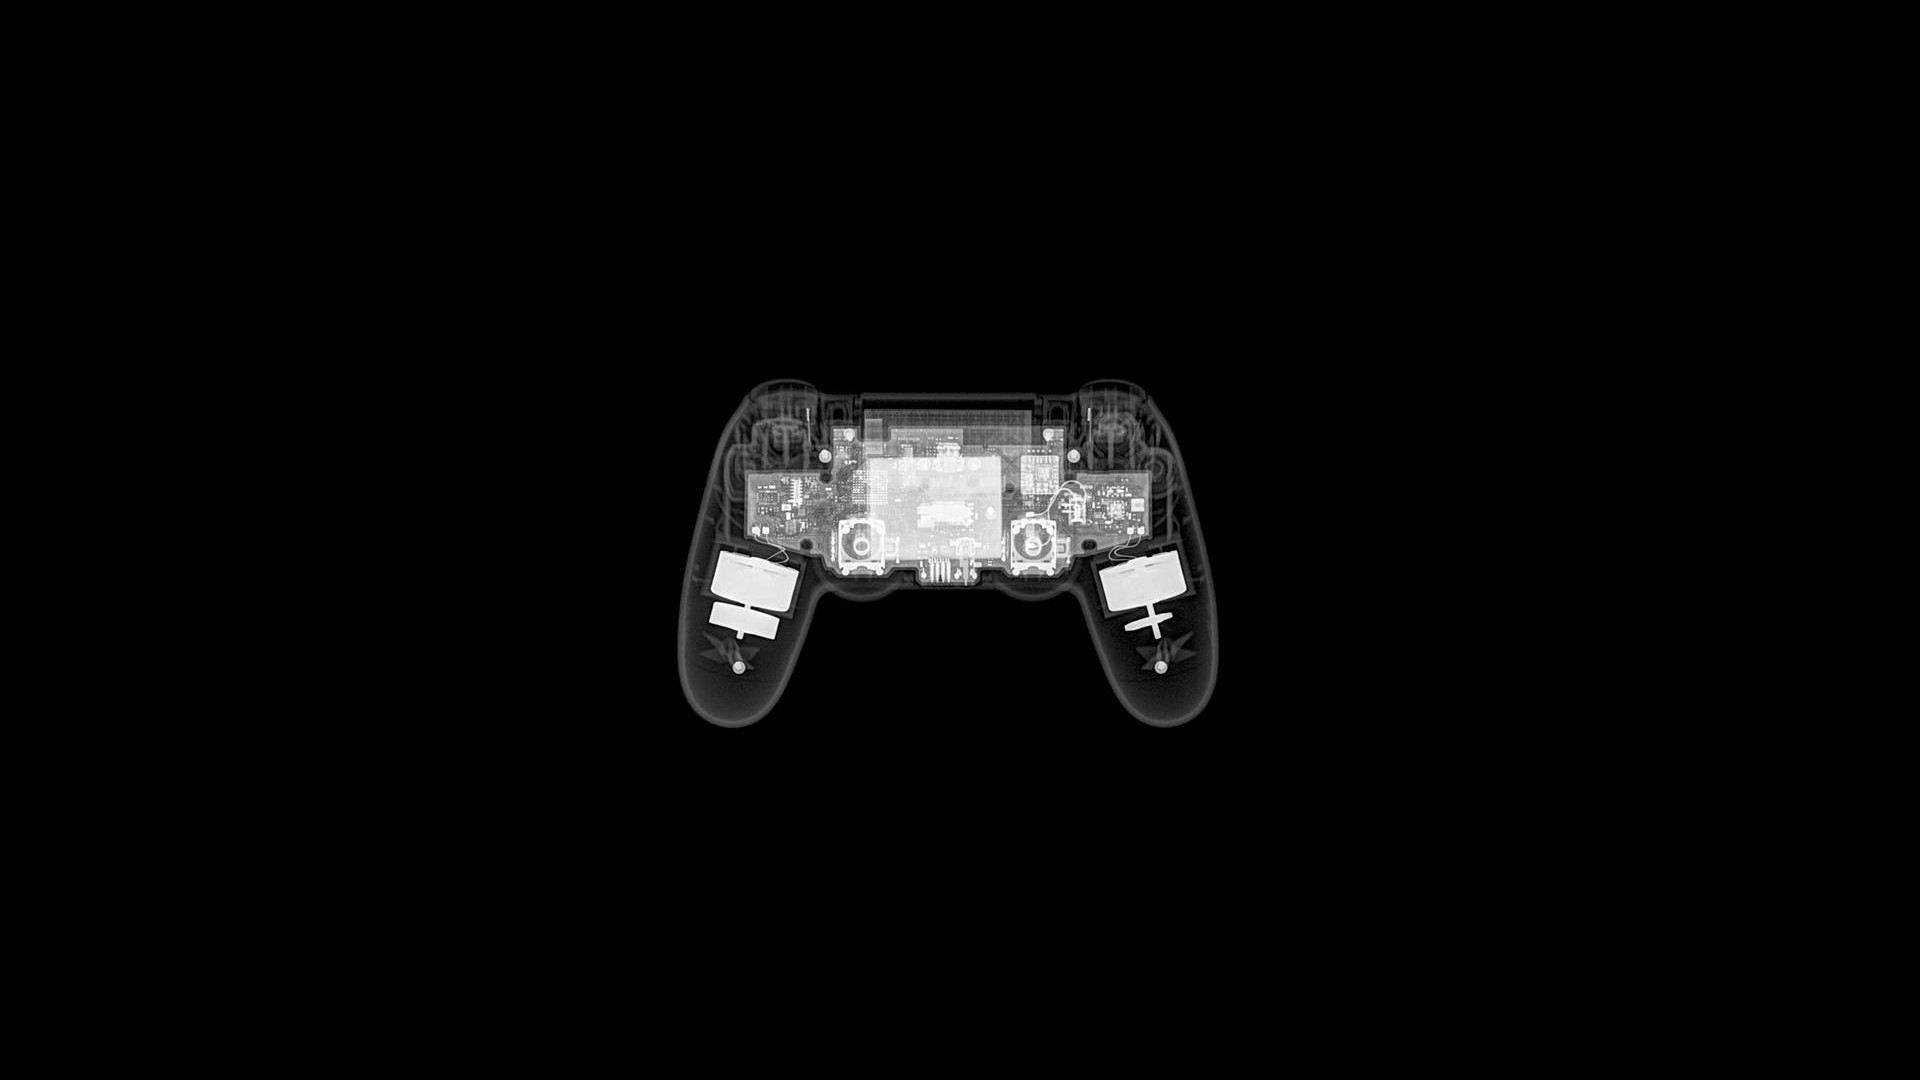 Gamer Thug Controller Hd Wallpapers: Ps4 Wallpapers (79+ Images